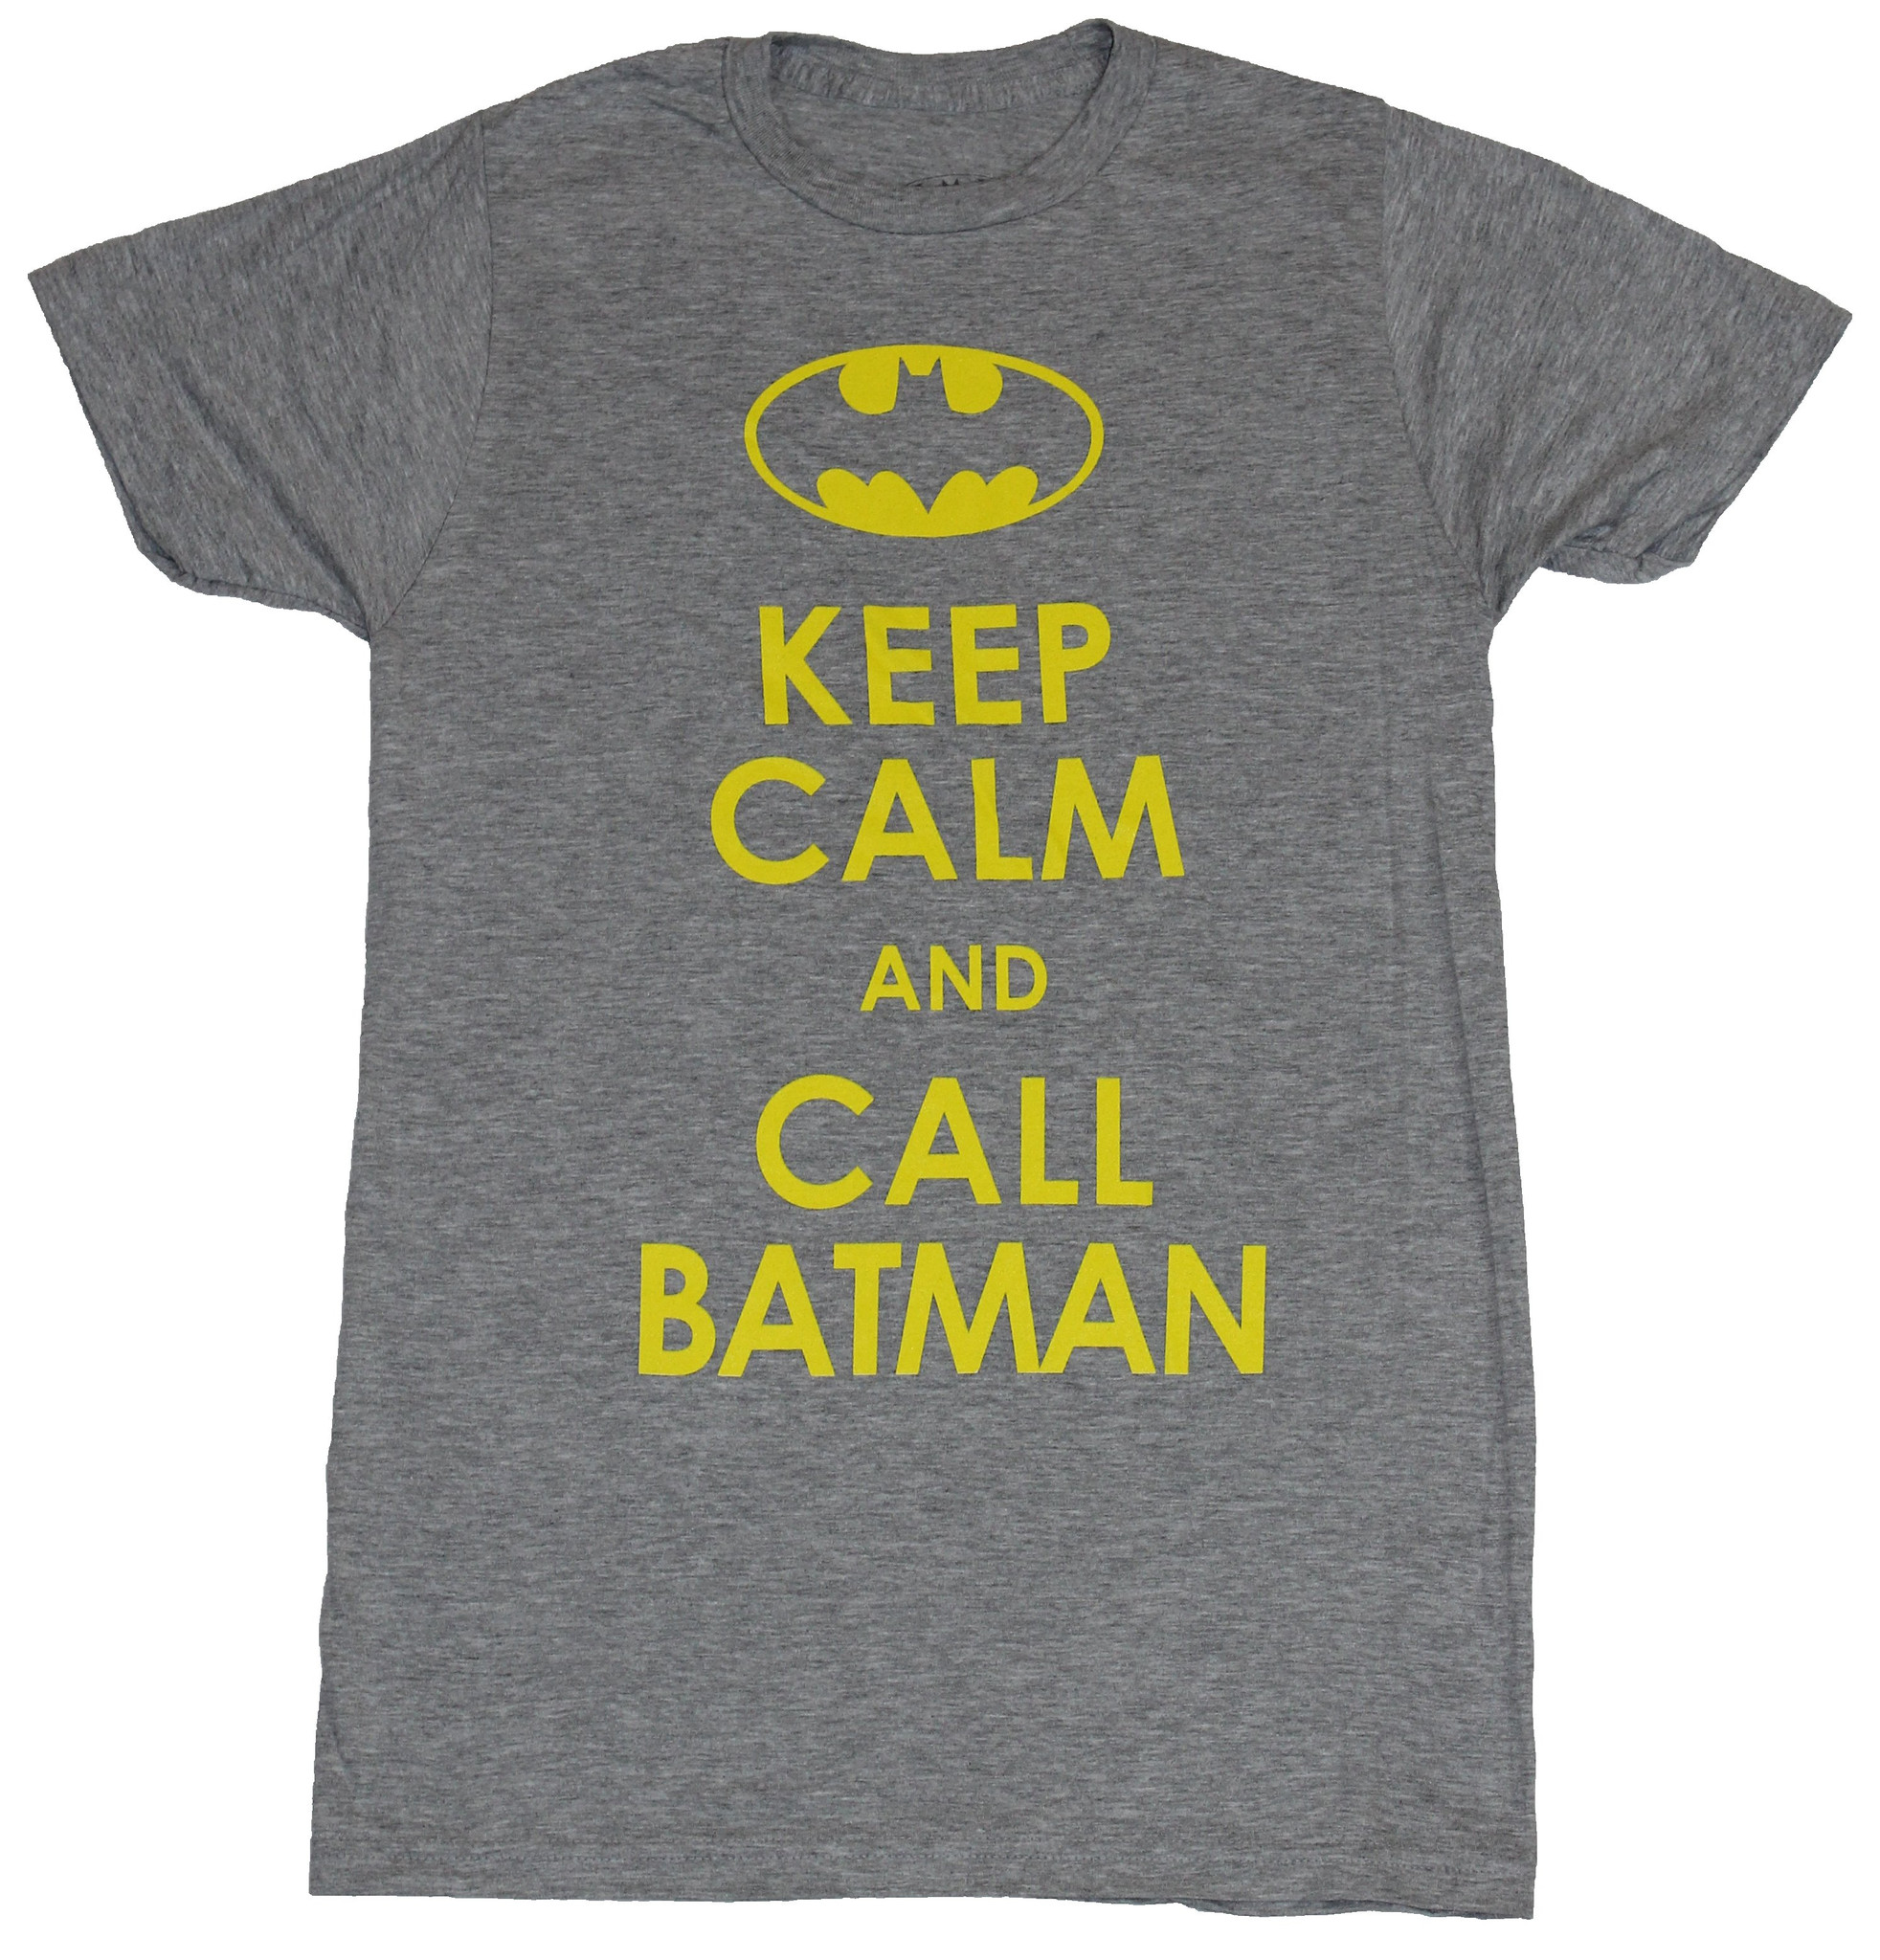 Batman (DC Comics) Mens T-Shirt -  Keep Calm and Call Batman